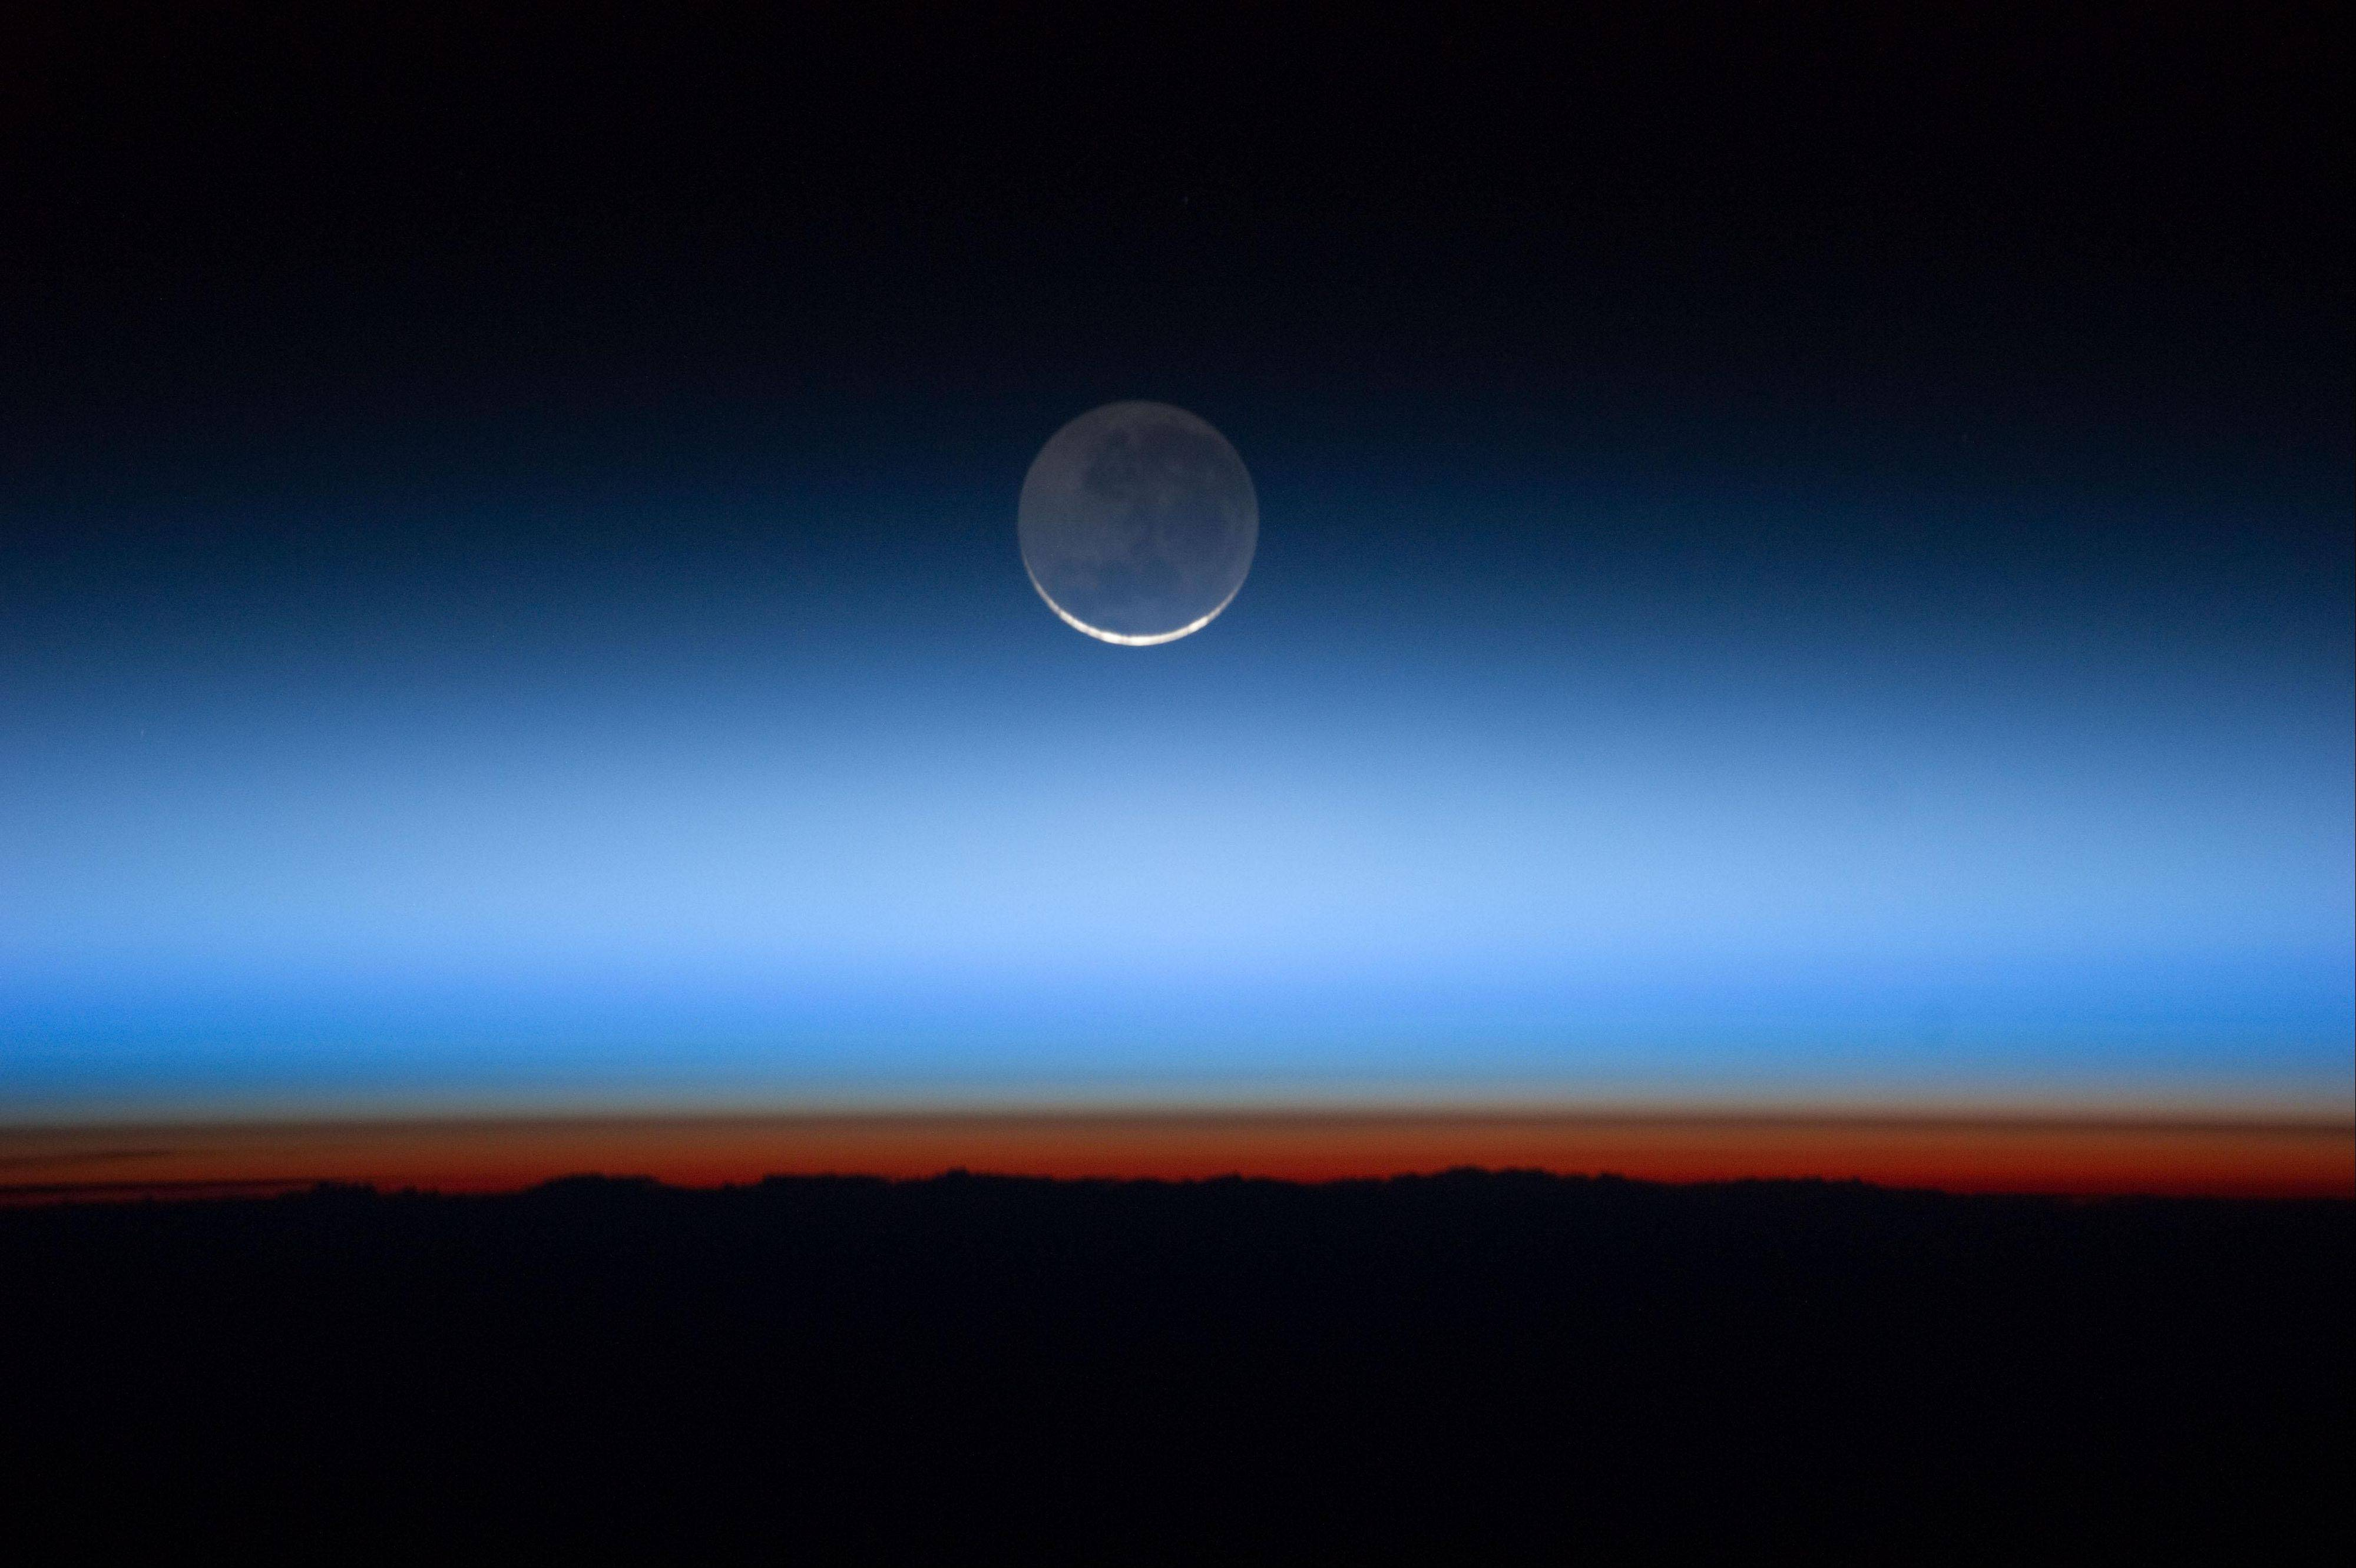 This undated image made available by NASA and photographed by the Expedition 28 crew aboard the International Space Station, shows the moon, at center with the limb of Earth near the bottom transitioning into the orange-colored troposphere, the lowest and most dense portion of the Earth�s atmosphere.